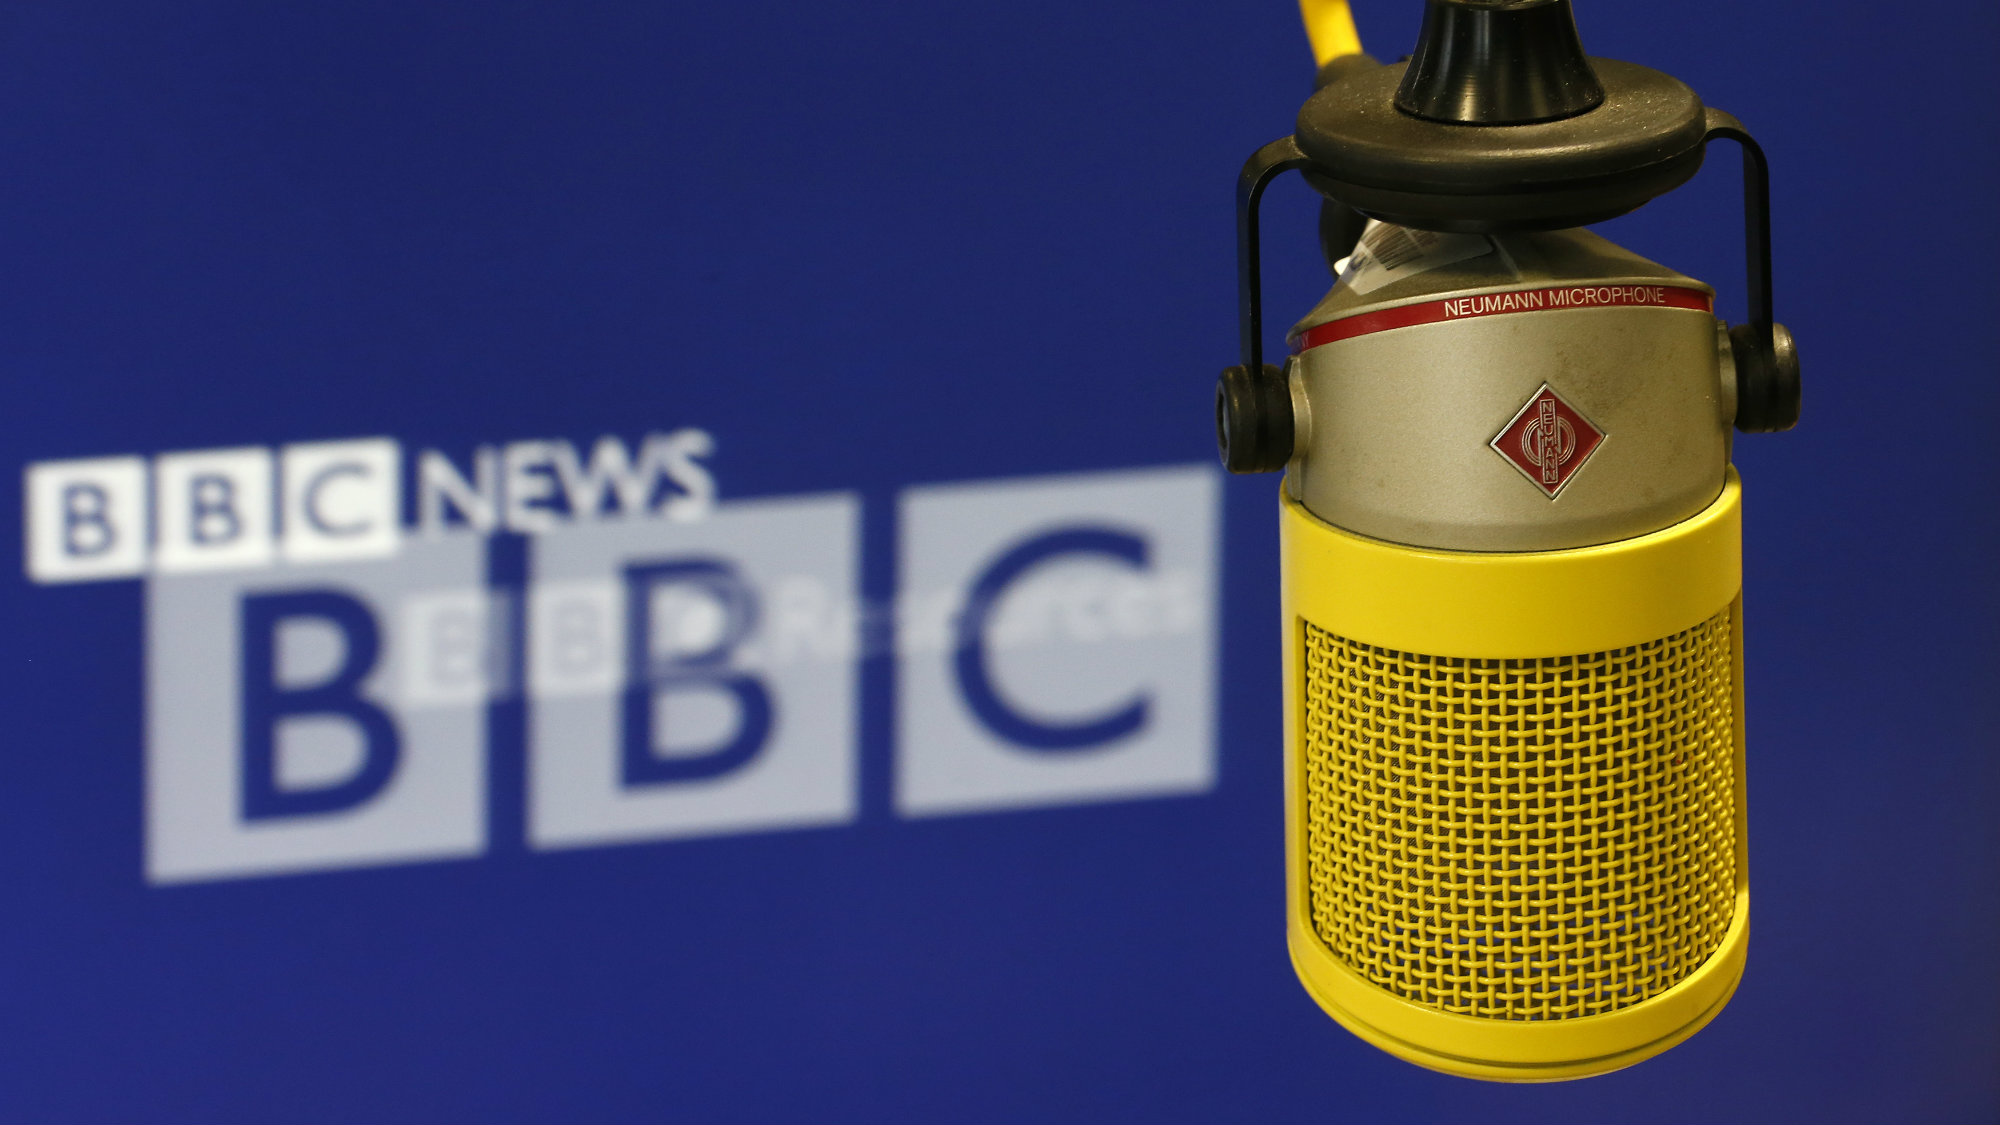 The microphone that newsreader Iain Purdon used to deliver the final BBC World Service news bulletin from BBC Bush House is seen in central London July 12, 2012.